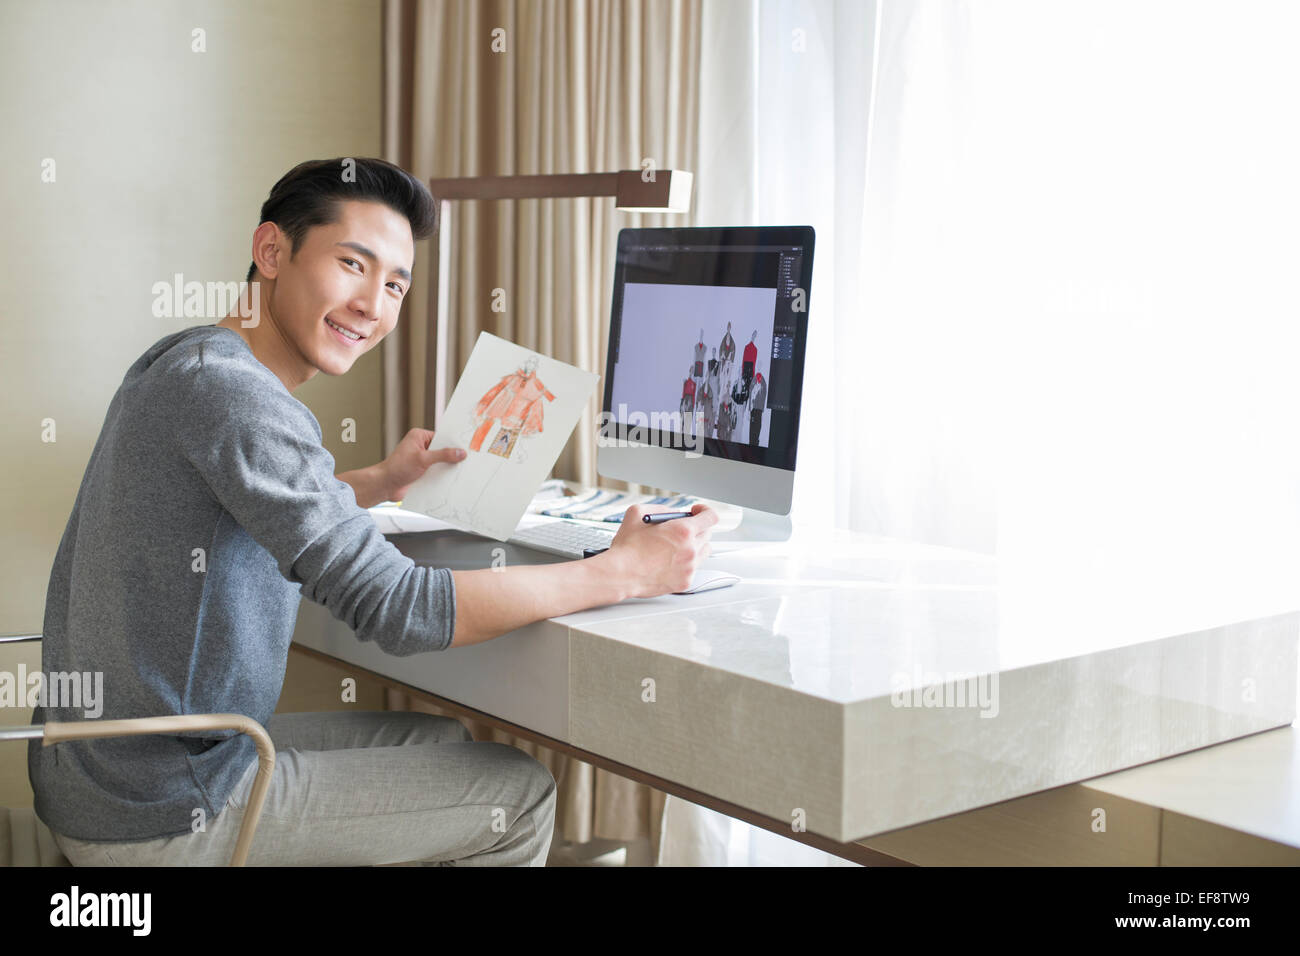 Young Male Fashion Designer Working At Home Stock Photo Alamy